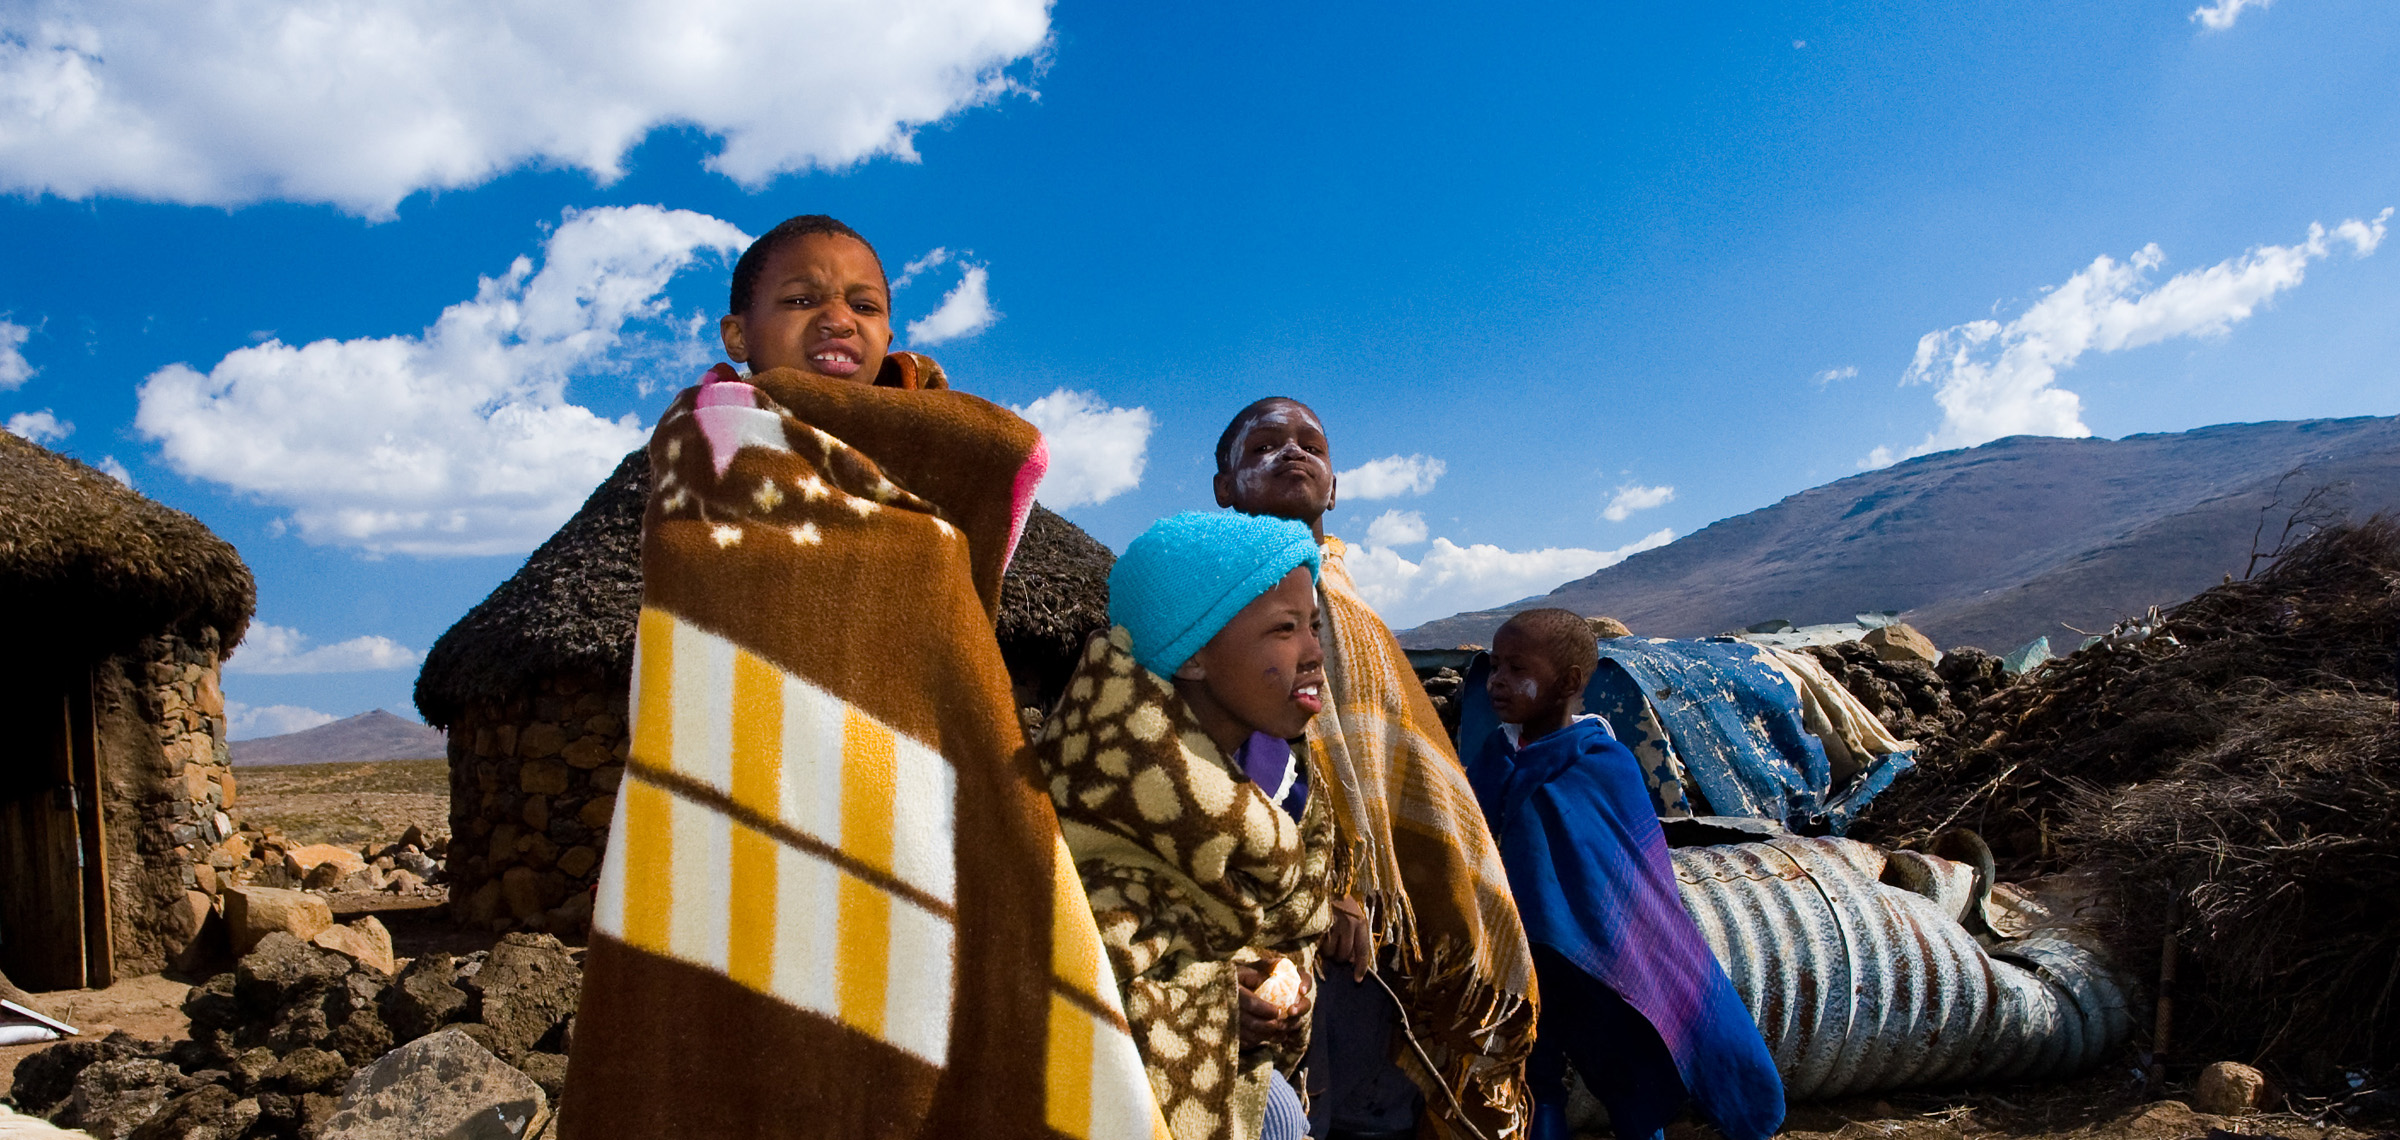 Children playing in Lesotho - by Jan Slangen